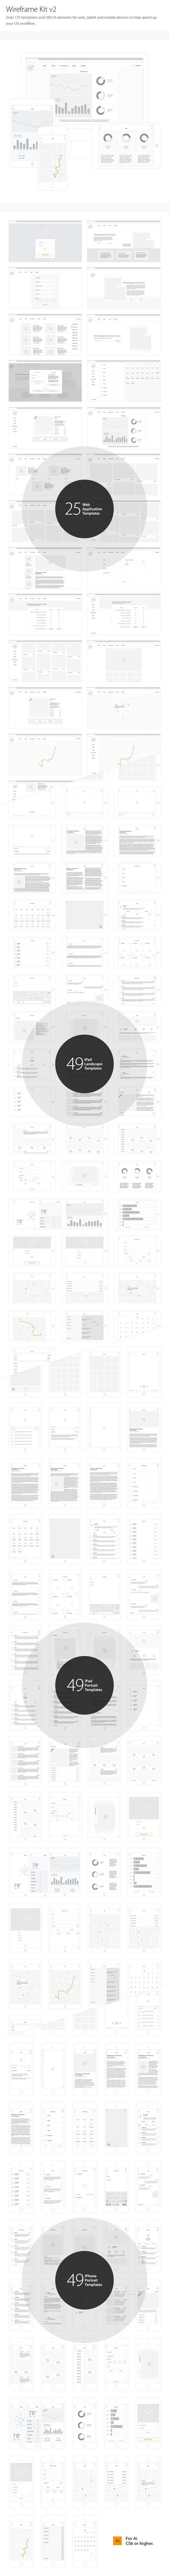 WIREFRAME KIT V2 by CreativeDash Design Studio